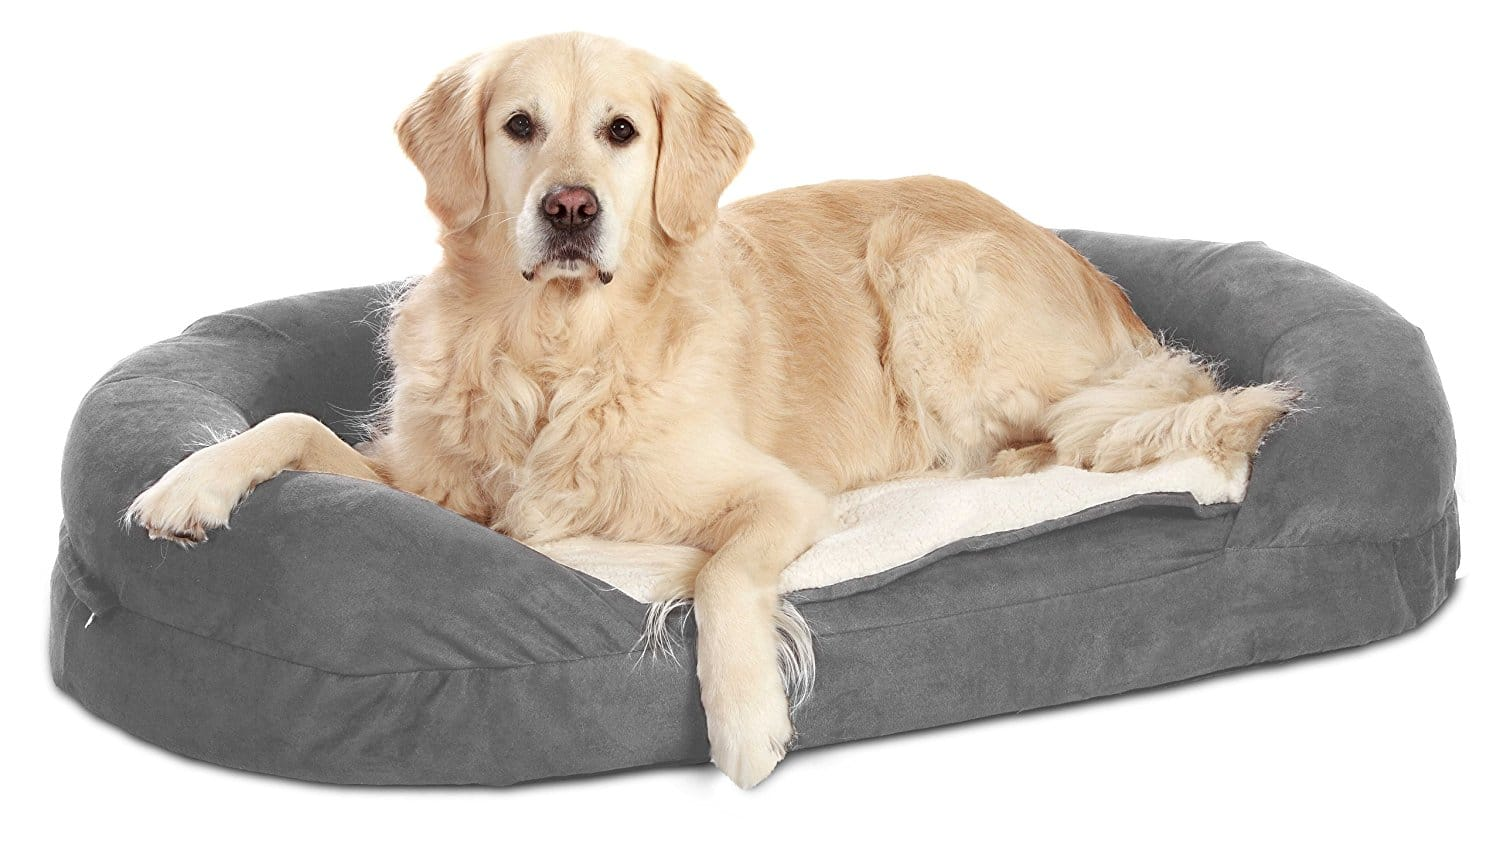 Karlie Flamingo Hundebett Ortho Bed Oval, grau